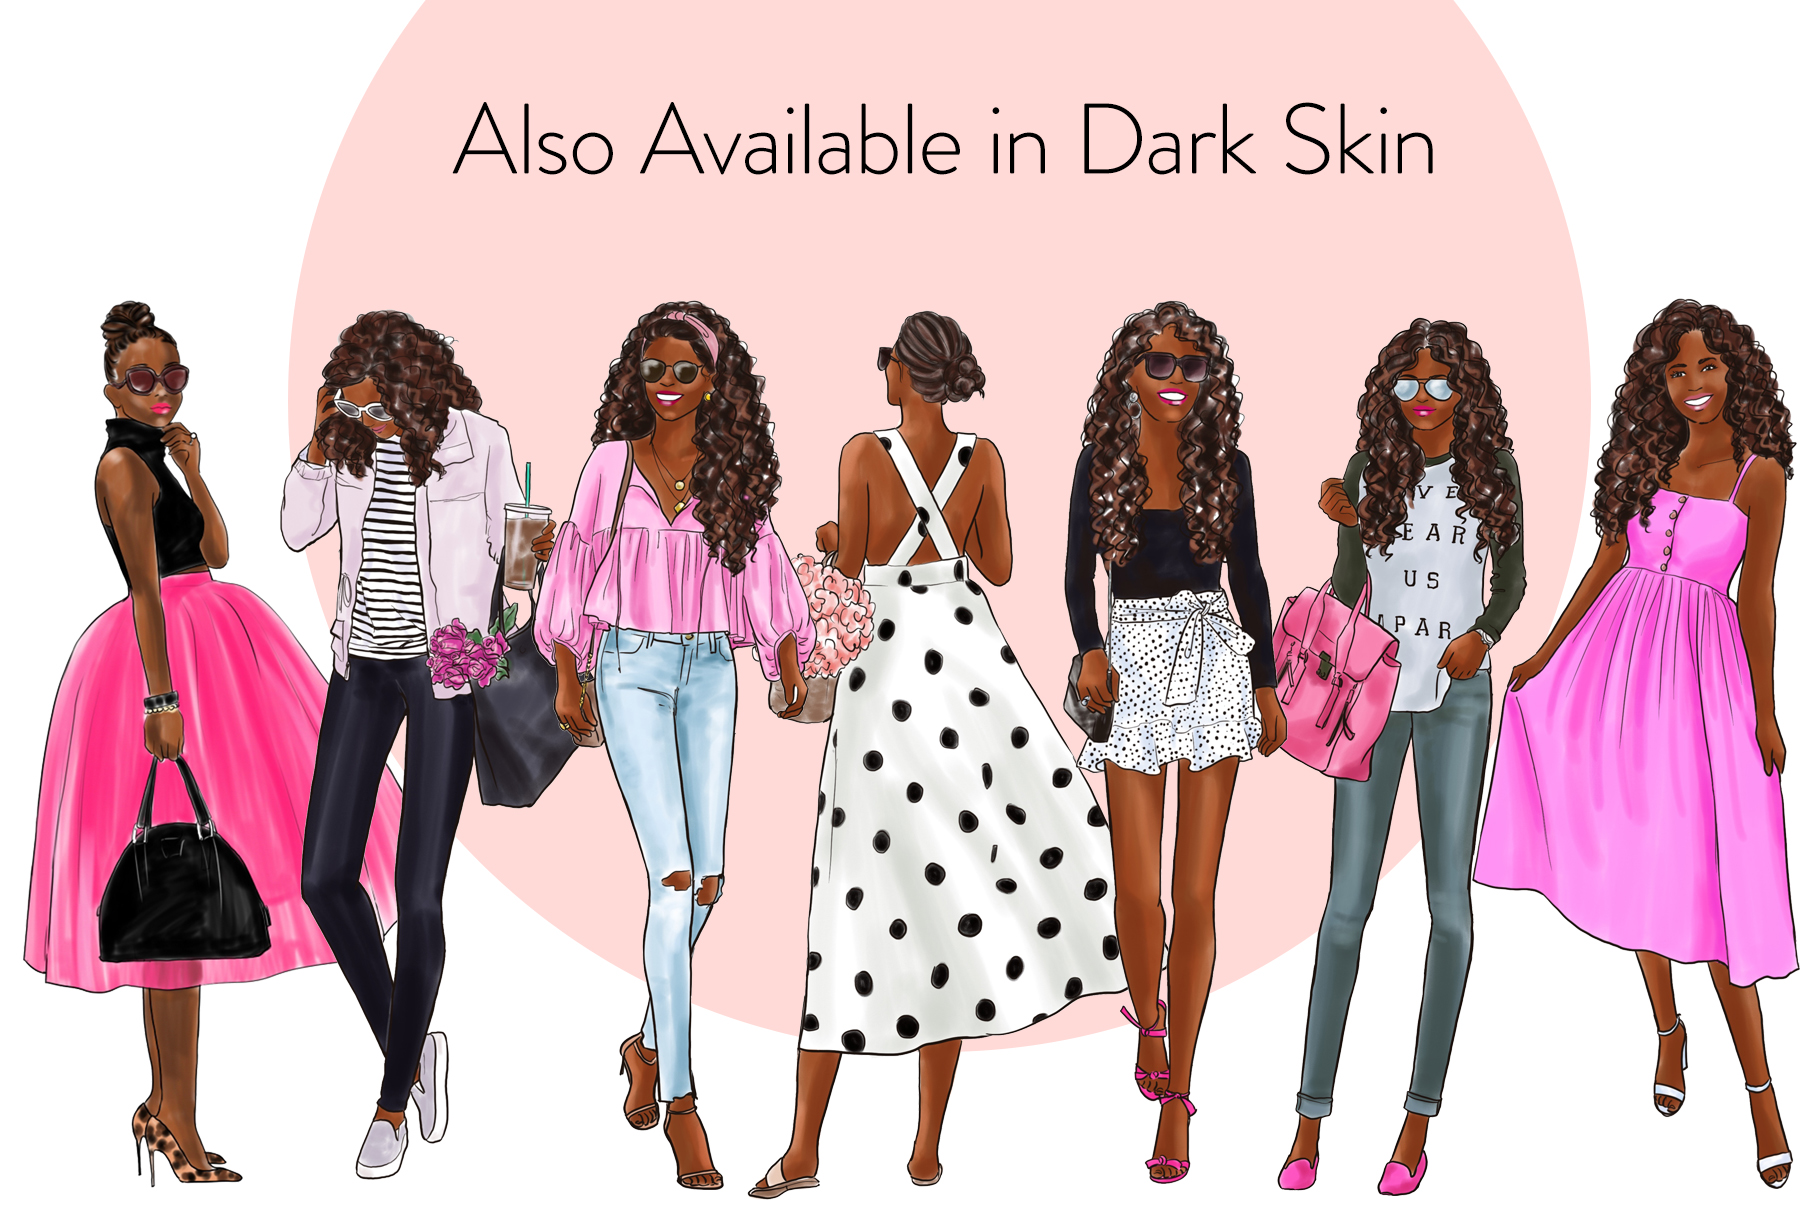 Fashion illustration clipart - Girls in Black & Pink - Light example image 4